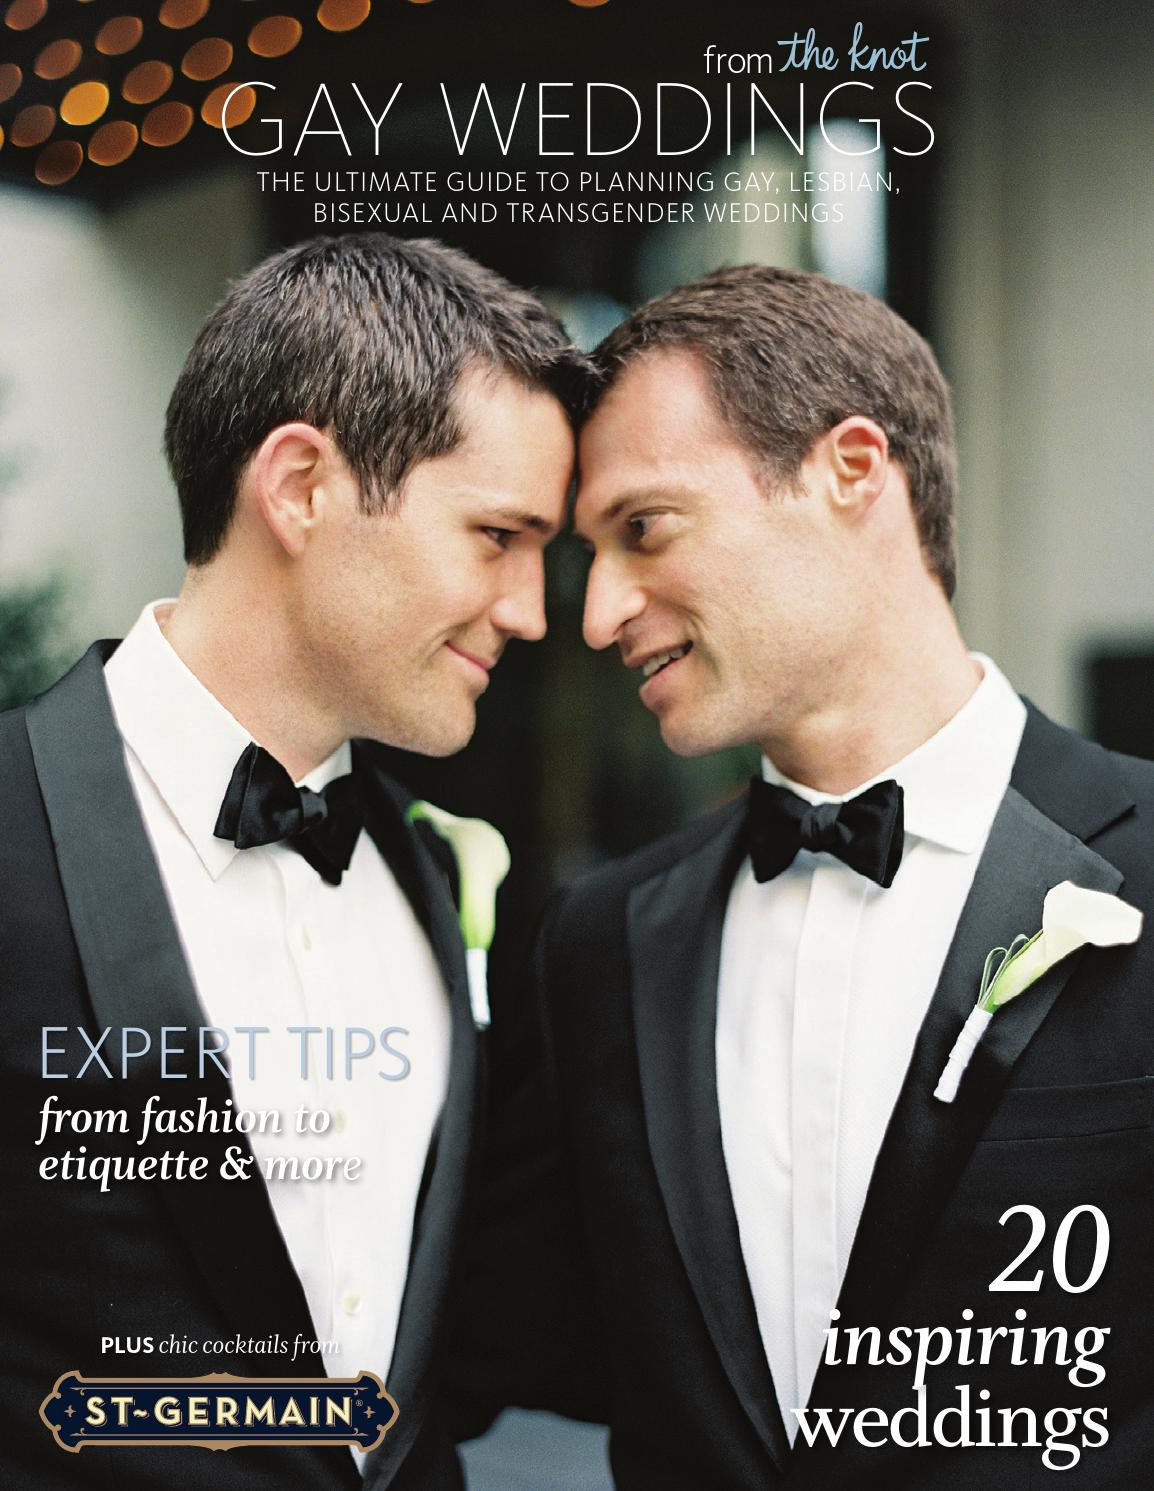 Gay Weddings from The Knot 2013  b45e23e87a